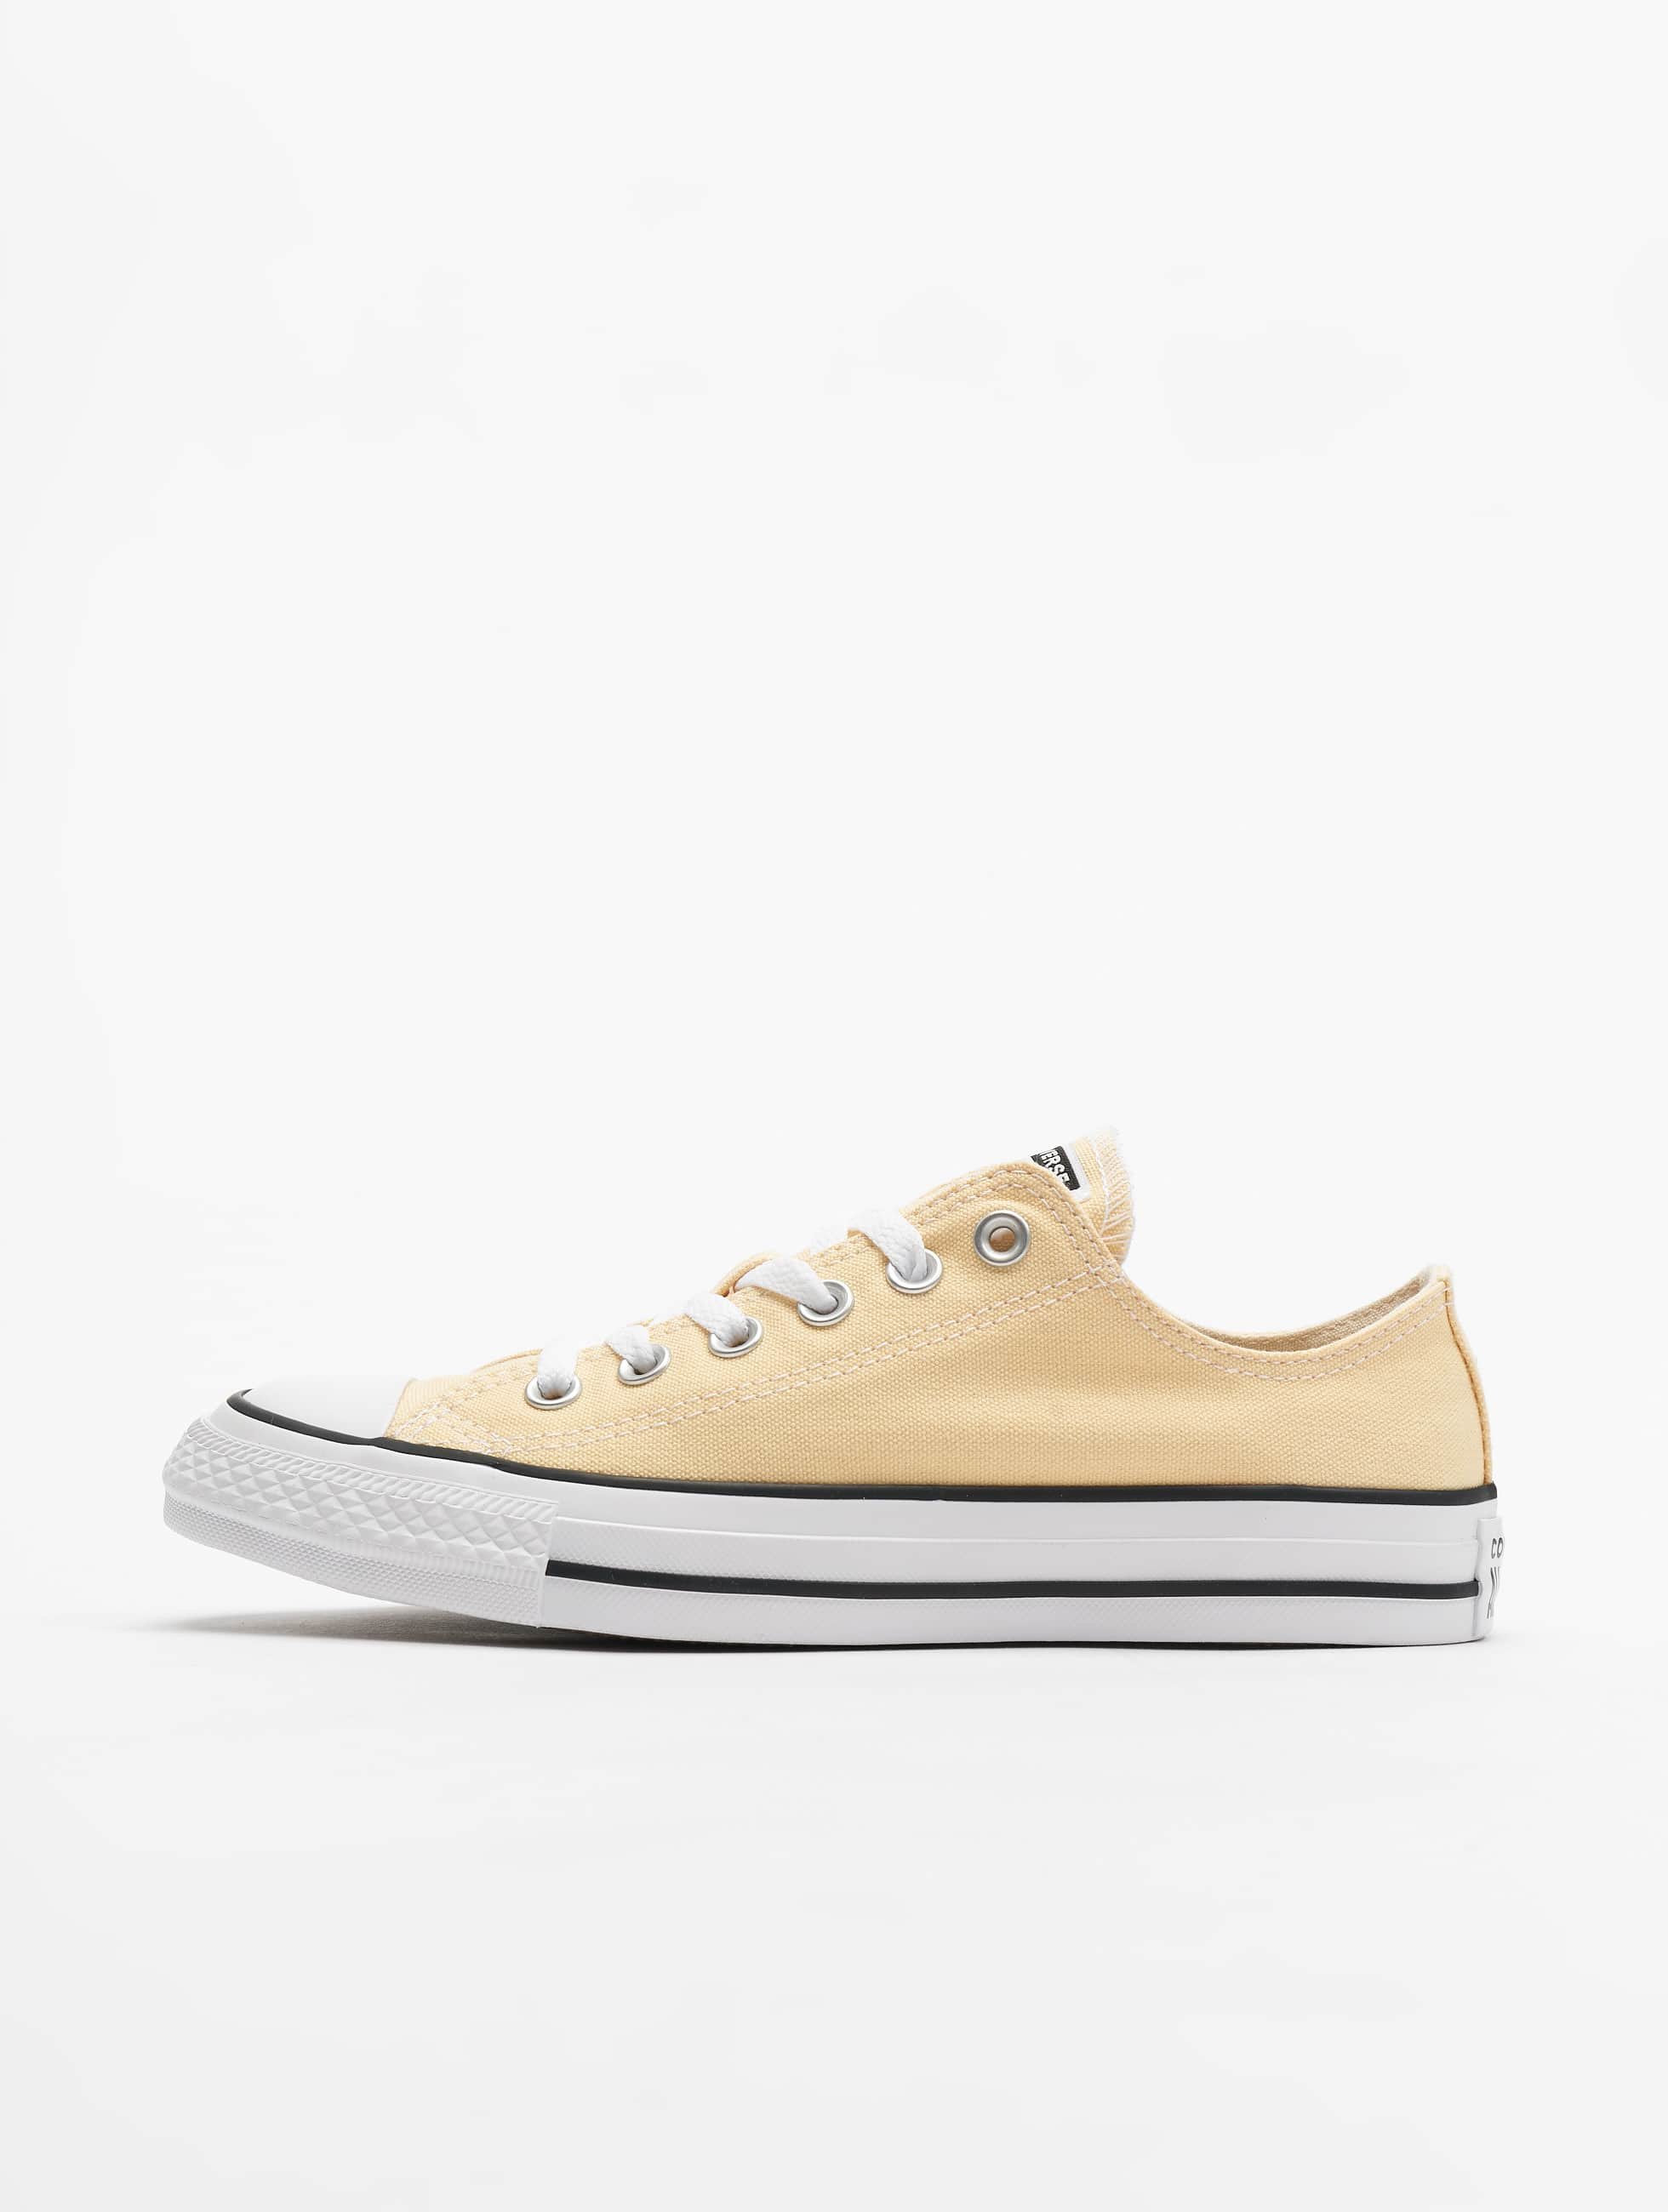 Converse Chuck Tailor All Star Ox Sneakers Pale Vanilla